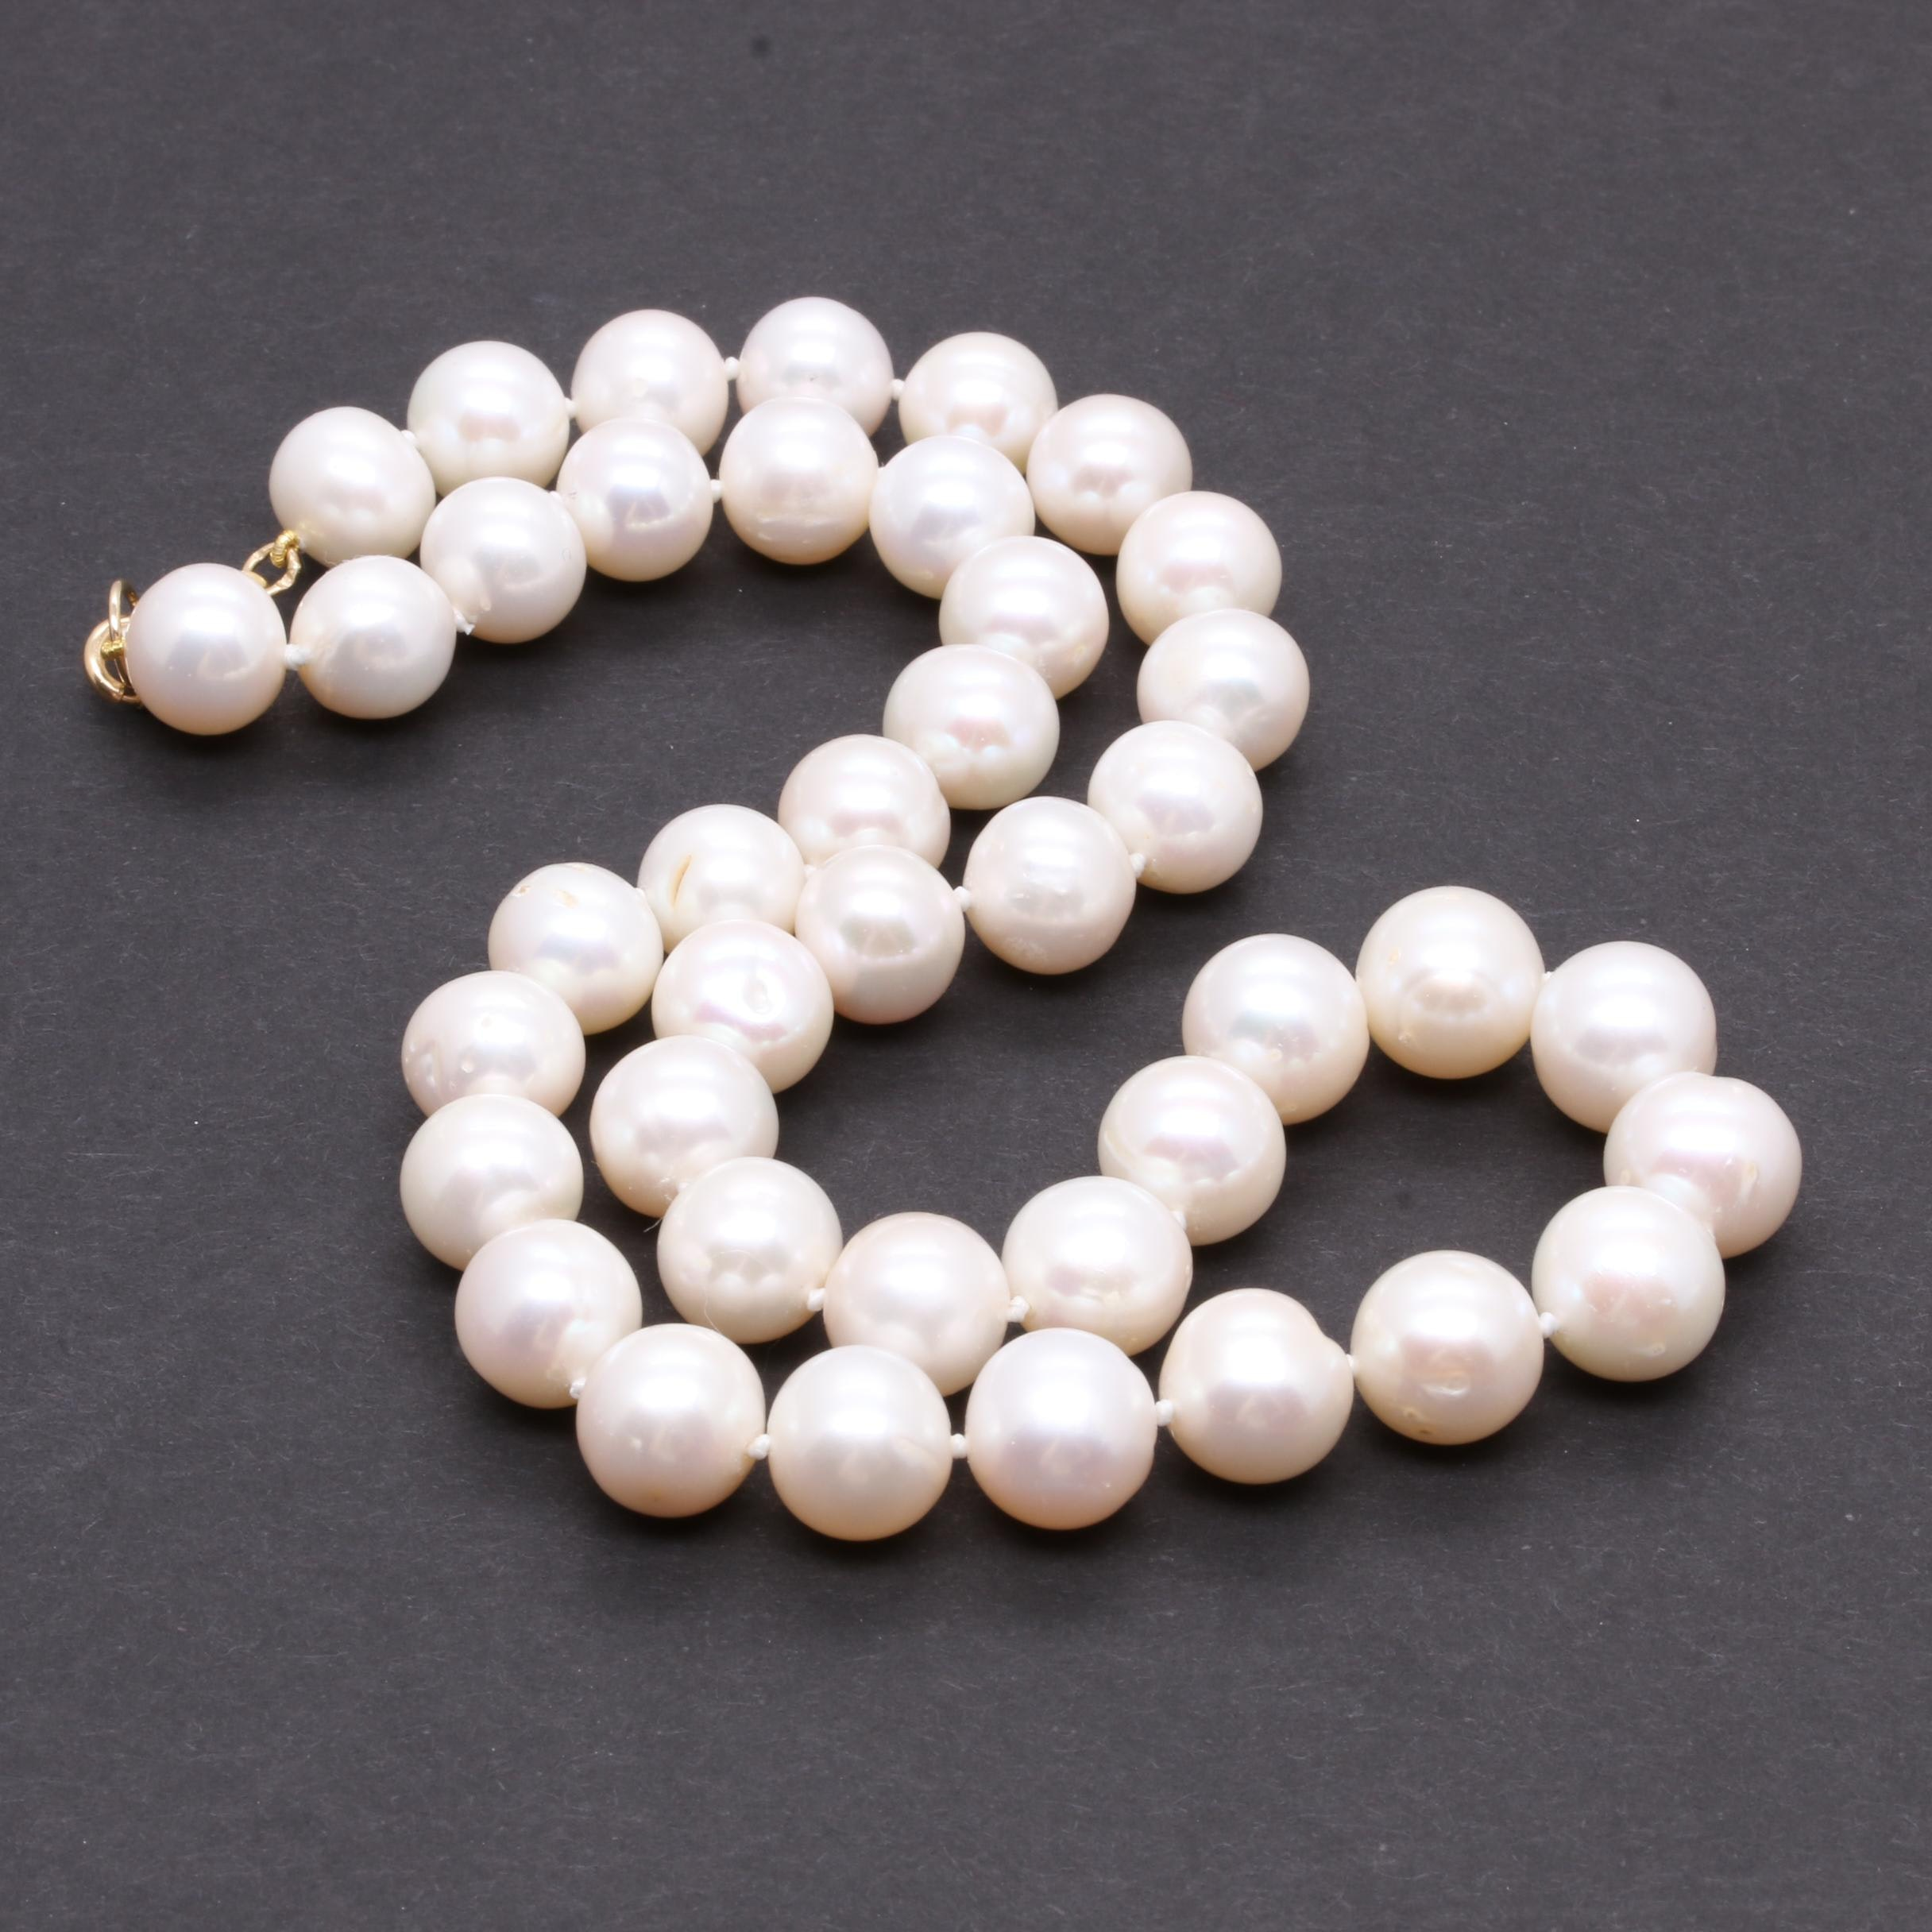 14K Yellow Gold Cultured Pearl Necklace with 10K Gold Accent